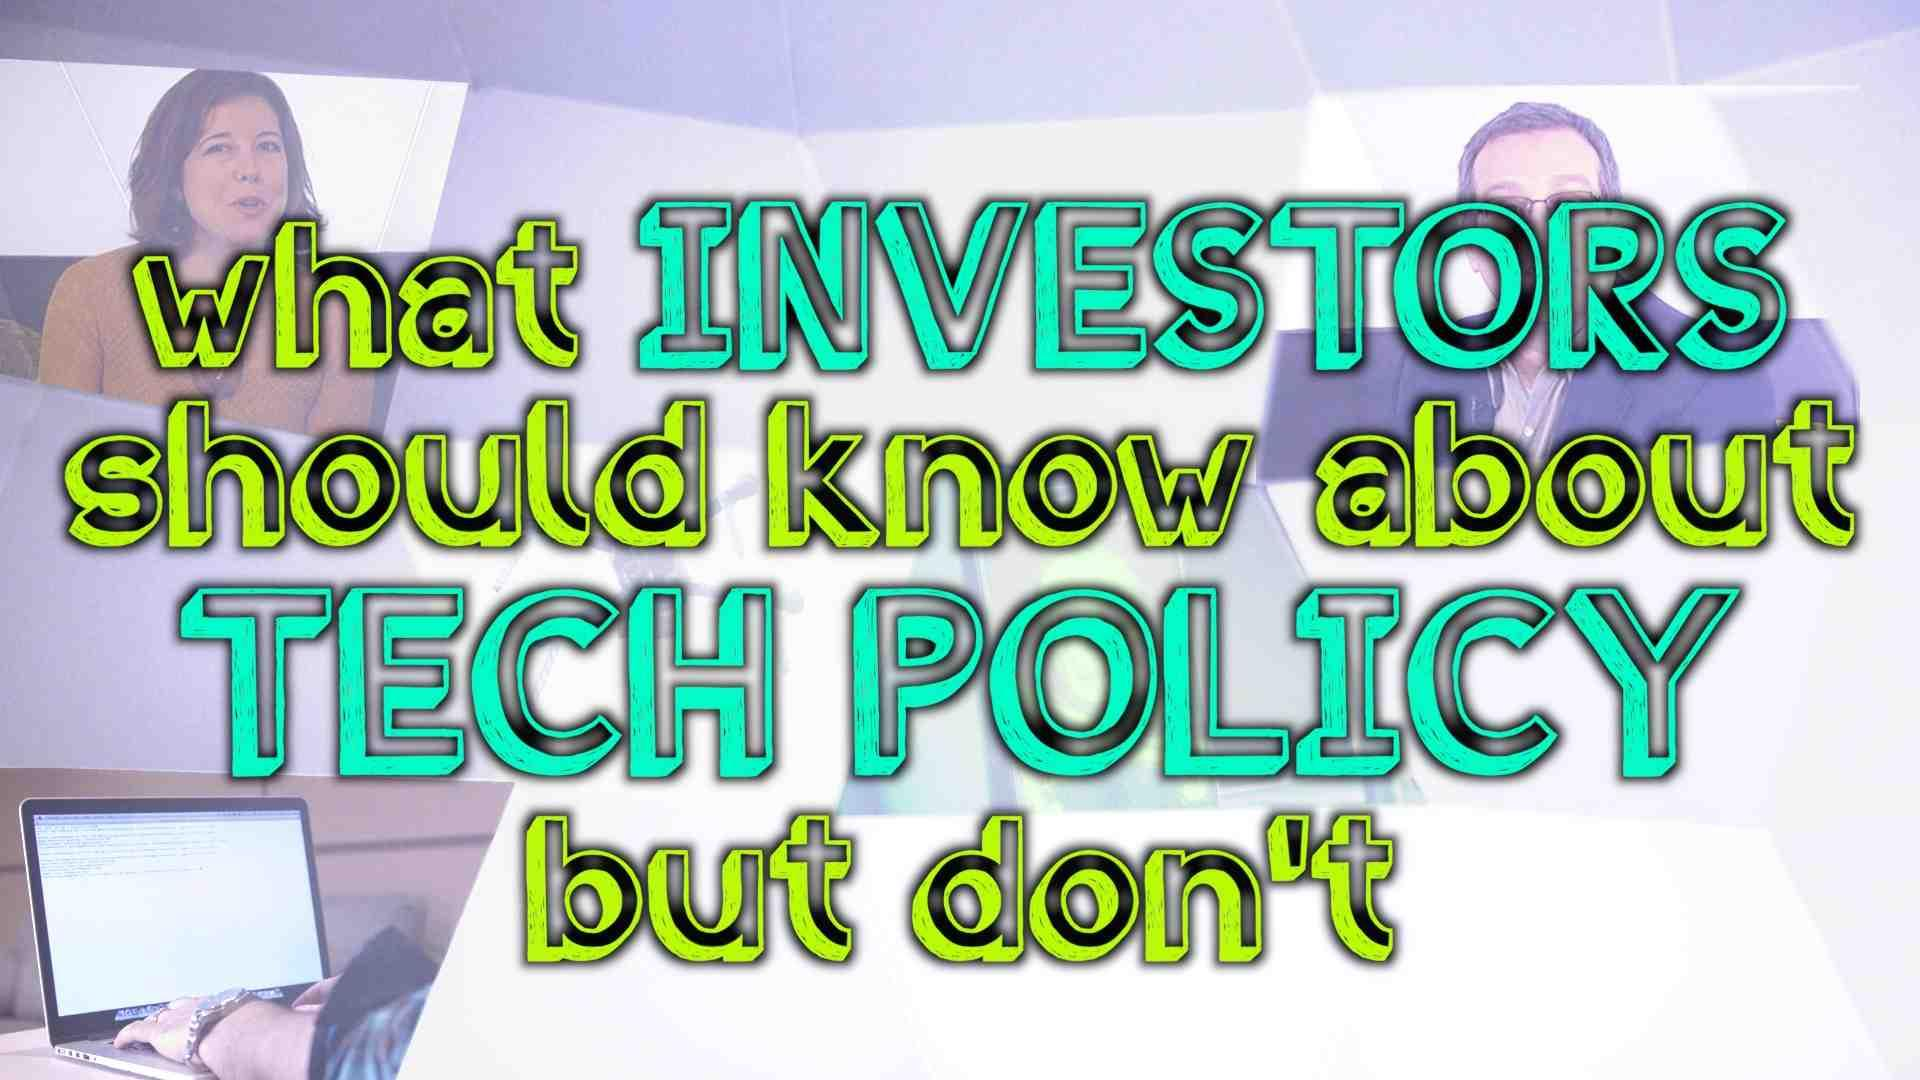 VC/DC: What Investors Should Know About Tech Regulation but Probably Don't